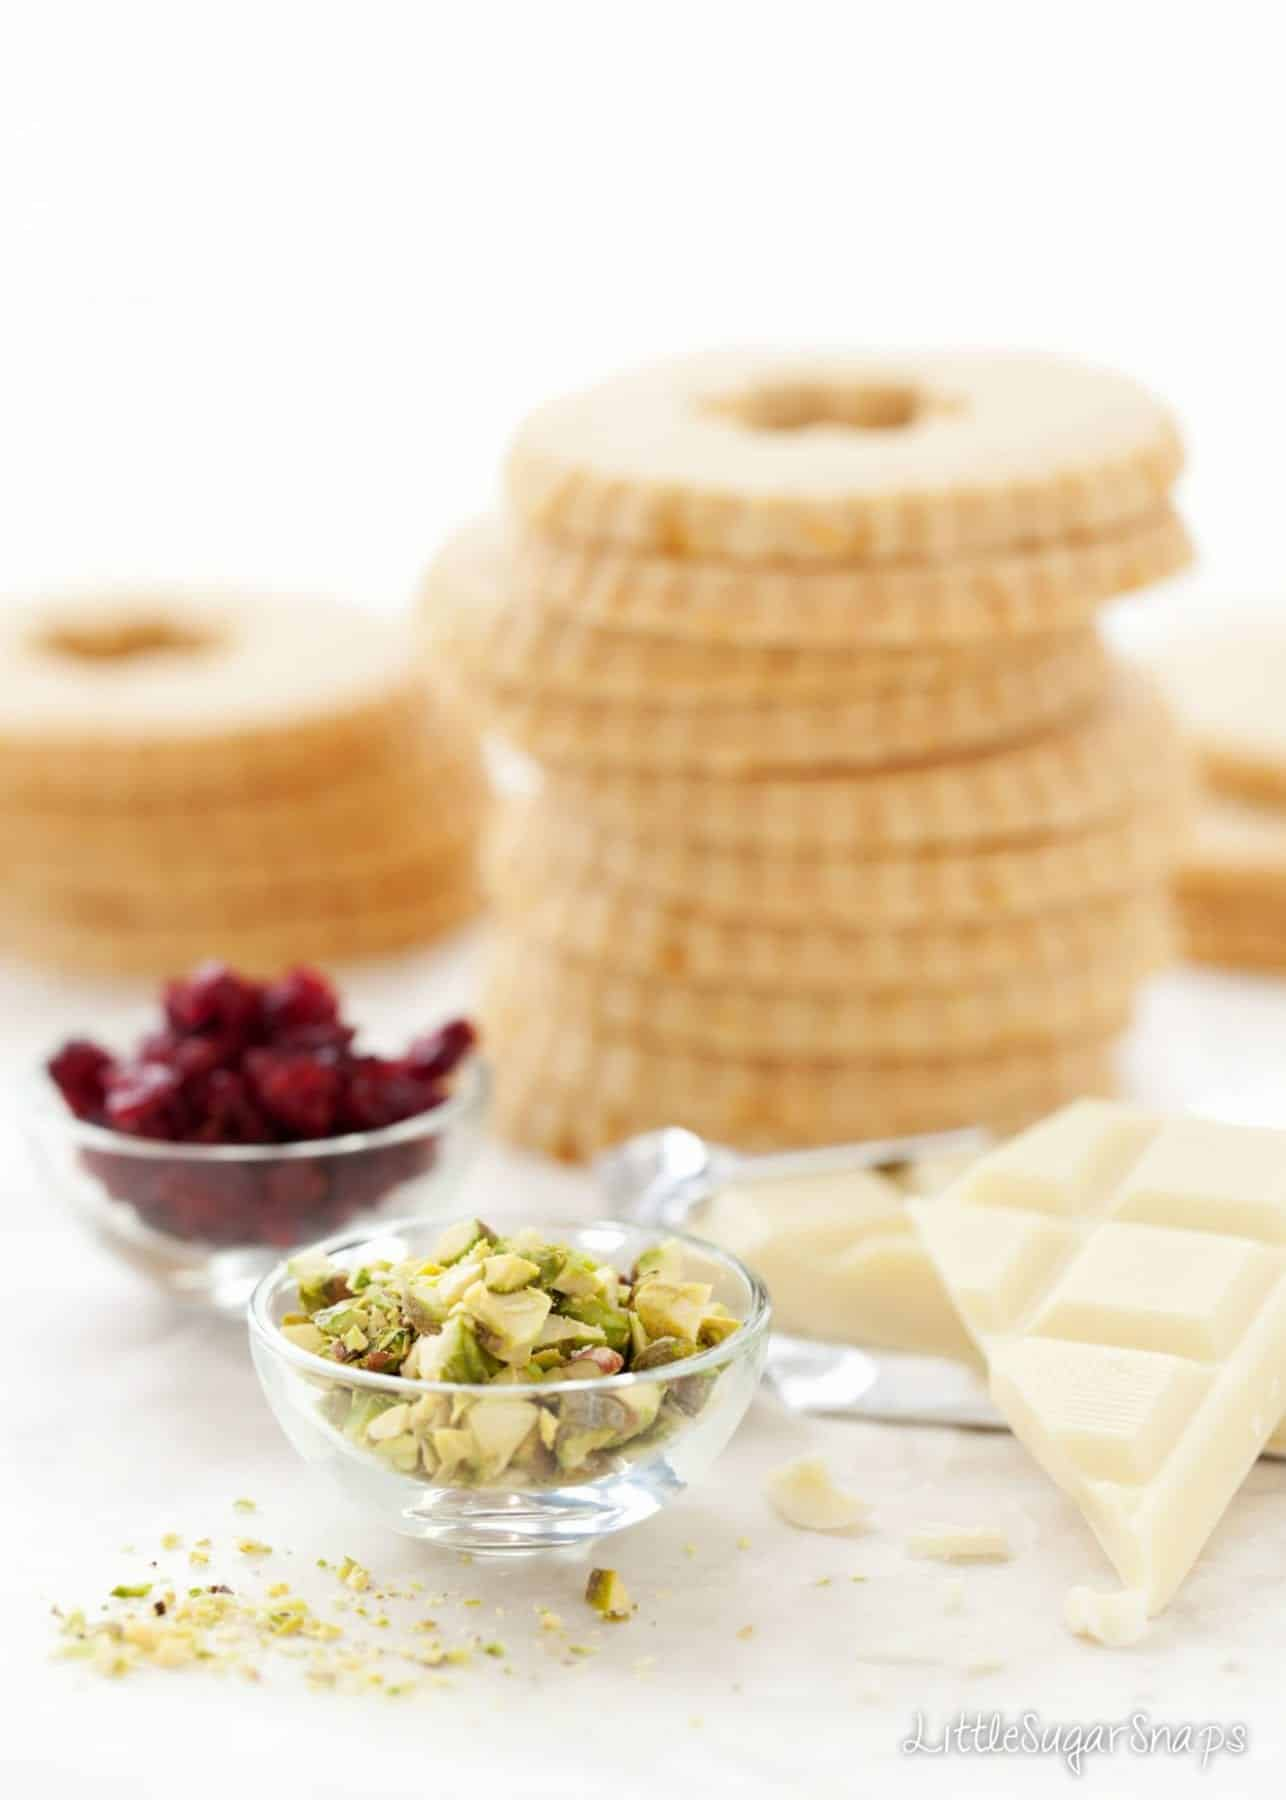 Pistachios, cranberries and white chocolate with a stack of cookies behind